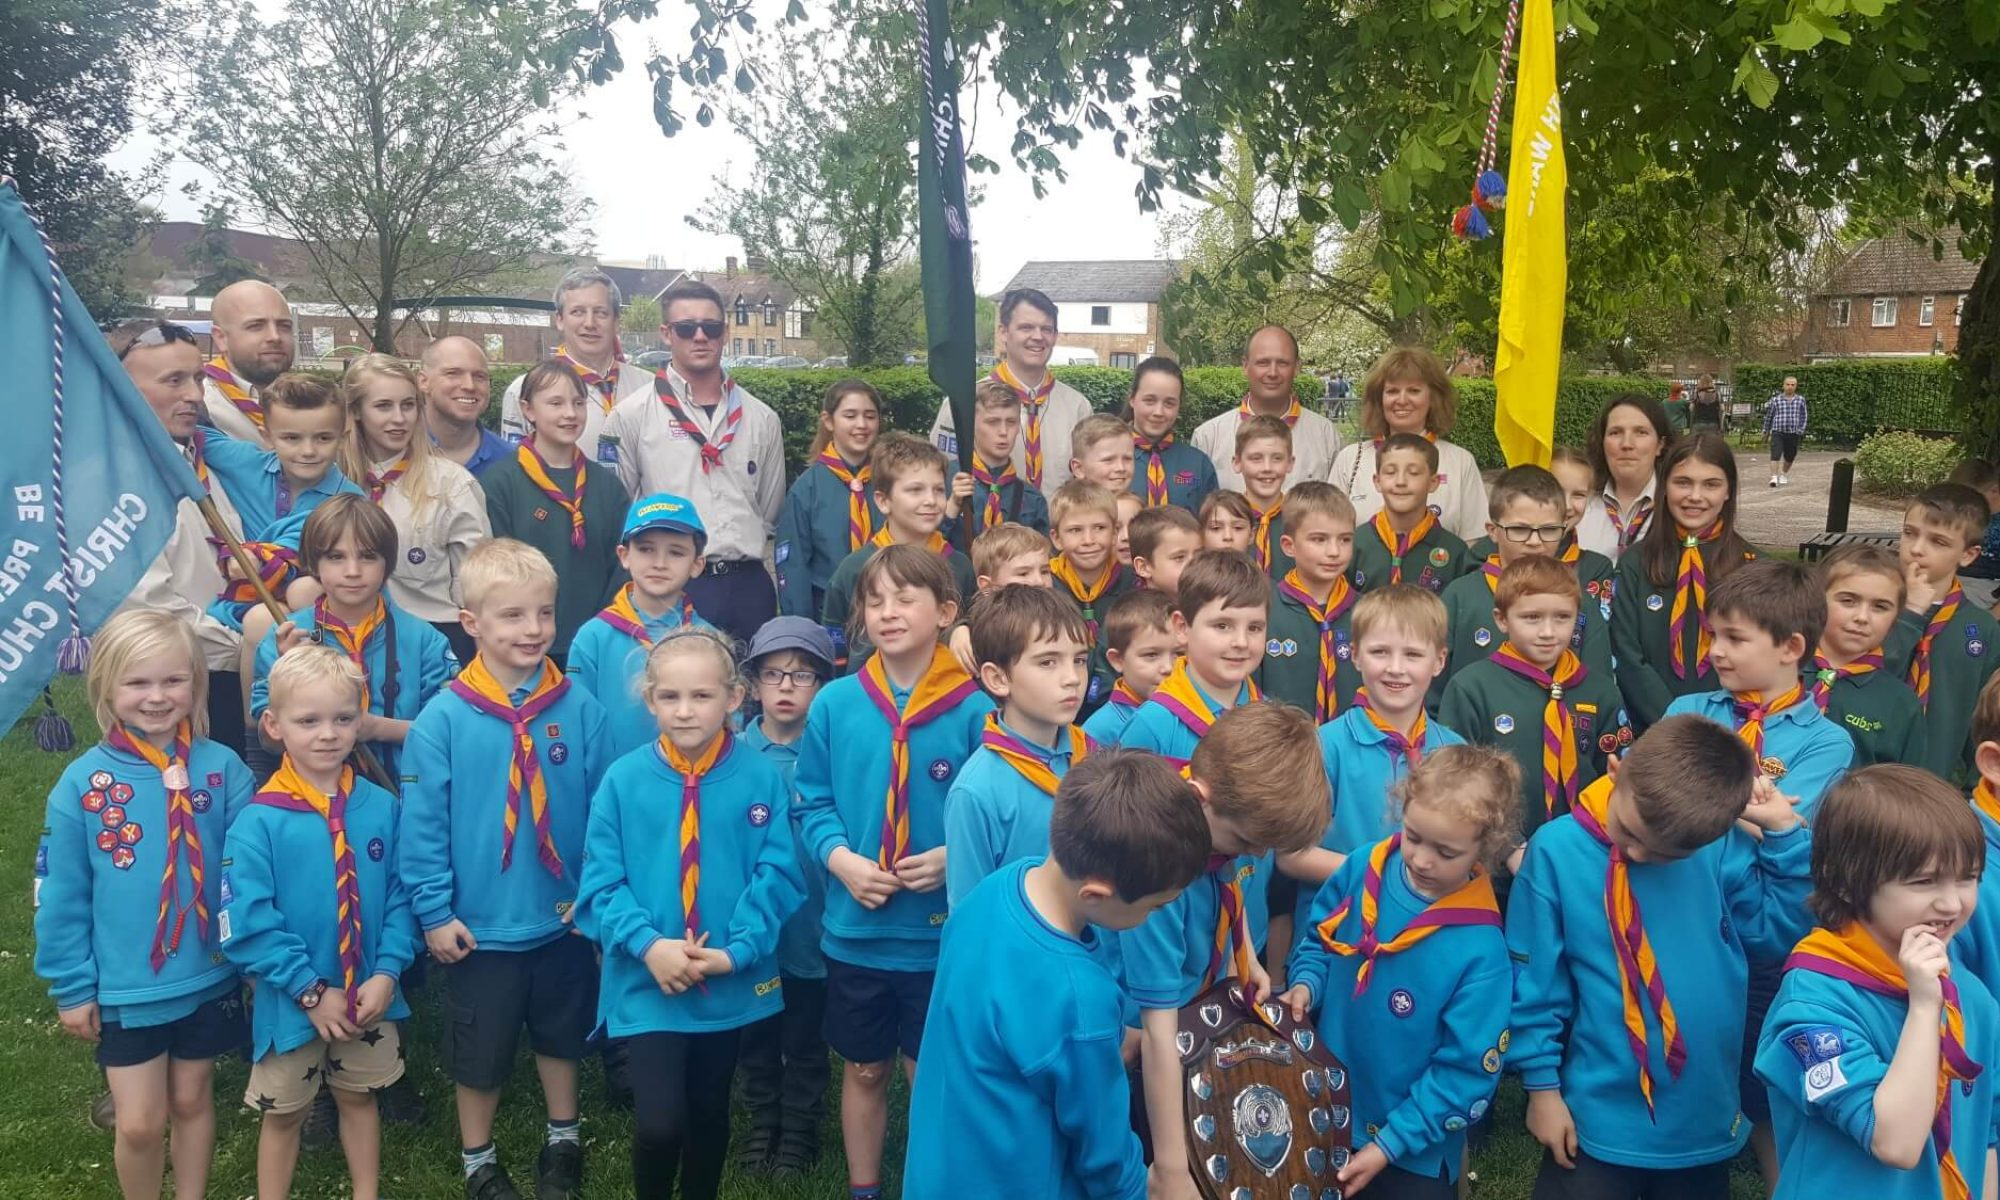 5th Ware Scout Group